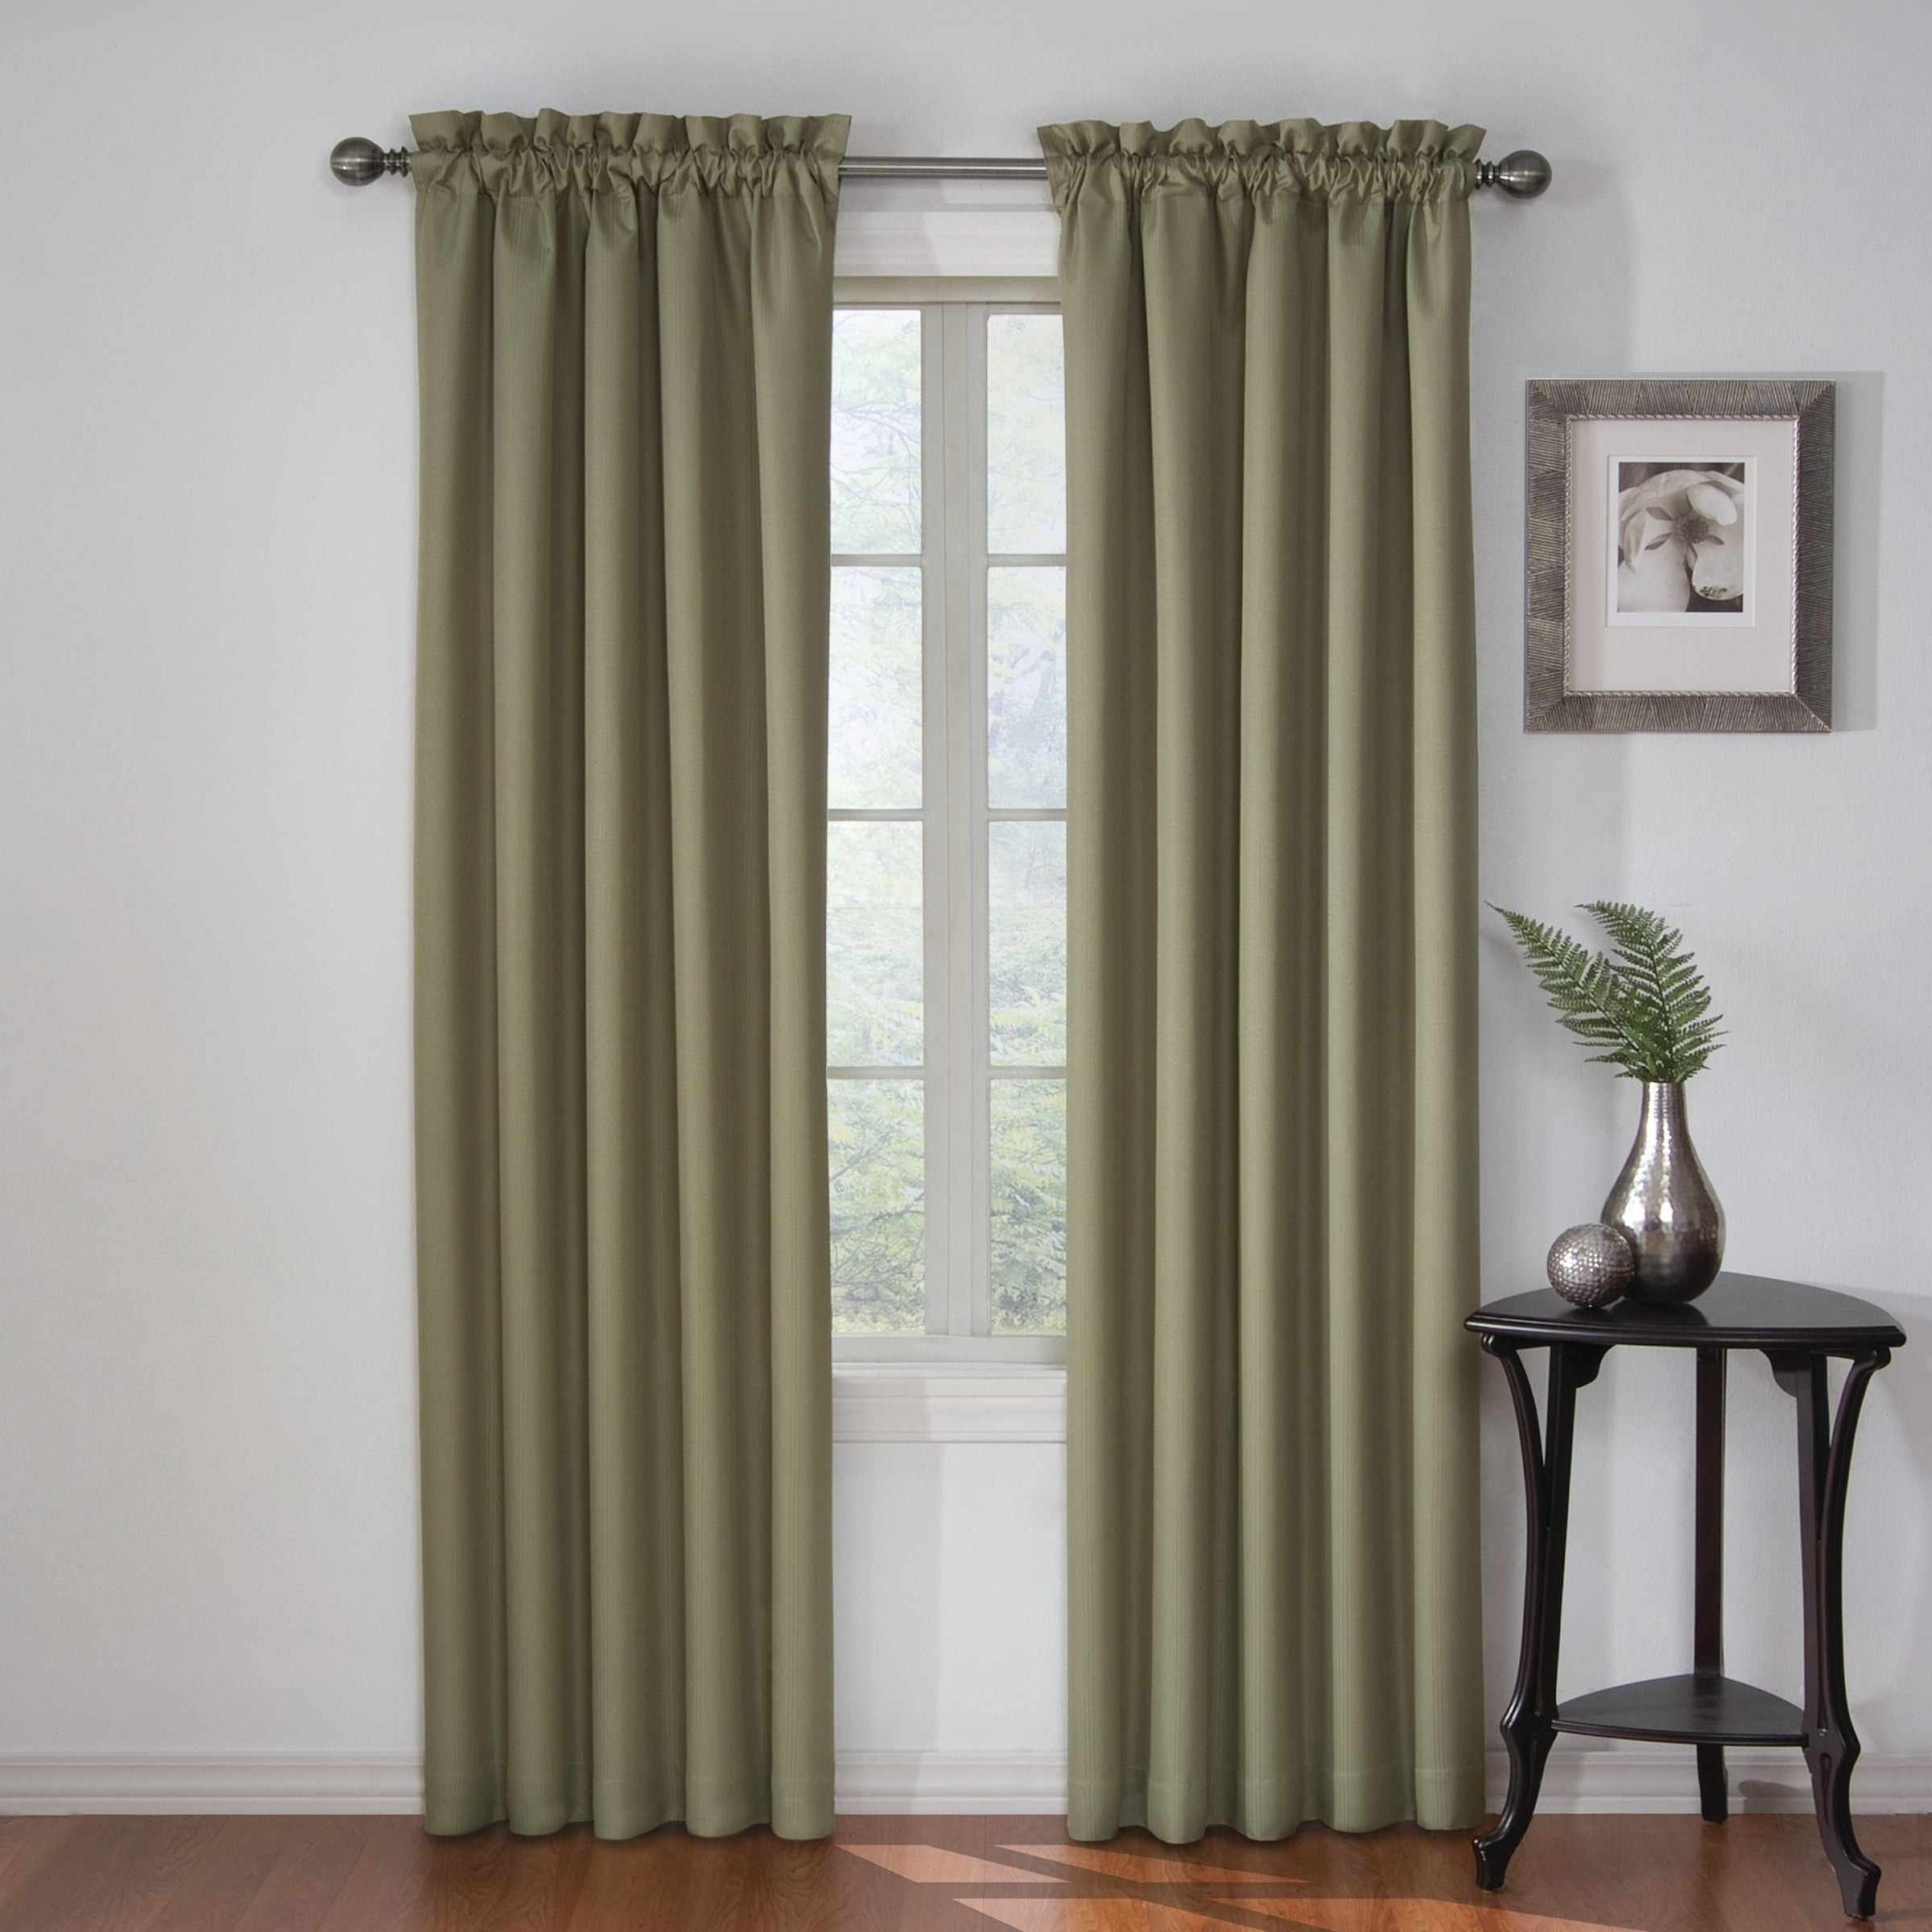 Eclipse Corinne Thermaback Curtain Panel With Regard To Eclipse Corinne Thermaback Curtain Panels (View 3 of 20)